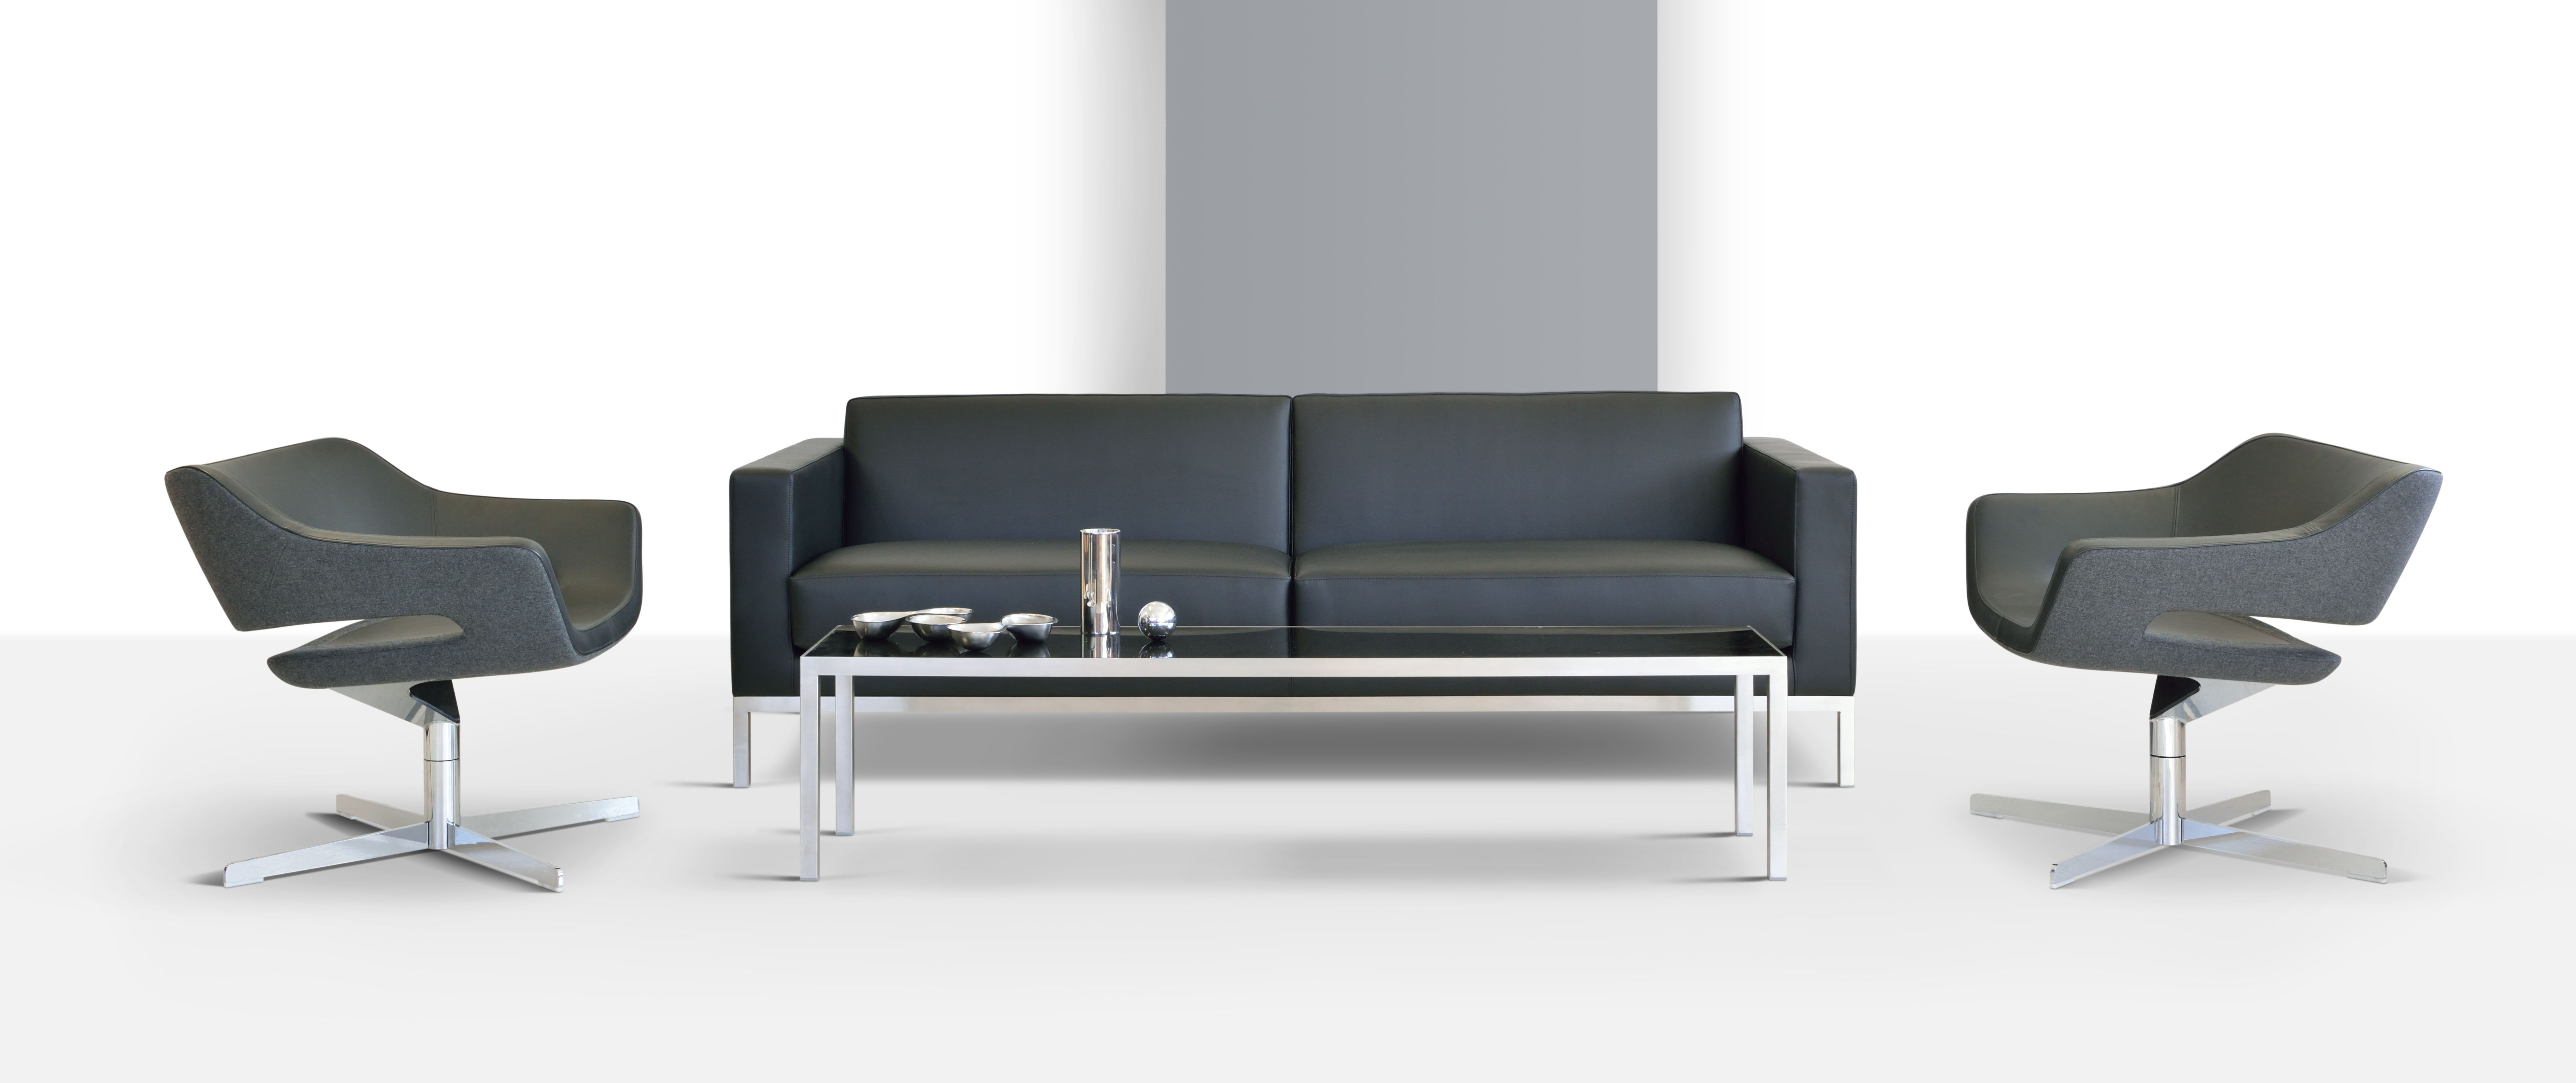 Hitch mylius hm26c 3 seat sofa with hm85a chair hm hitch mylius hm26c 3 seat sofa with hm85a chair parisarafo Choice Image